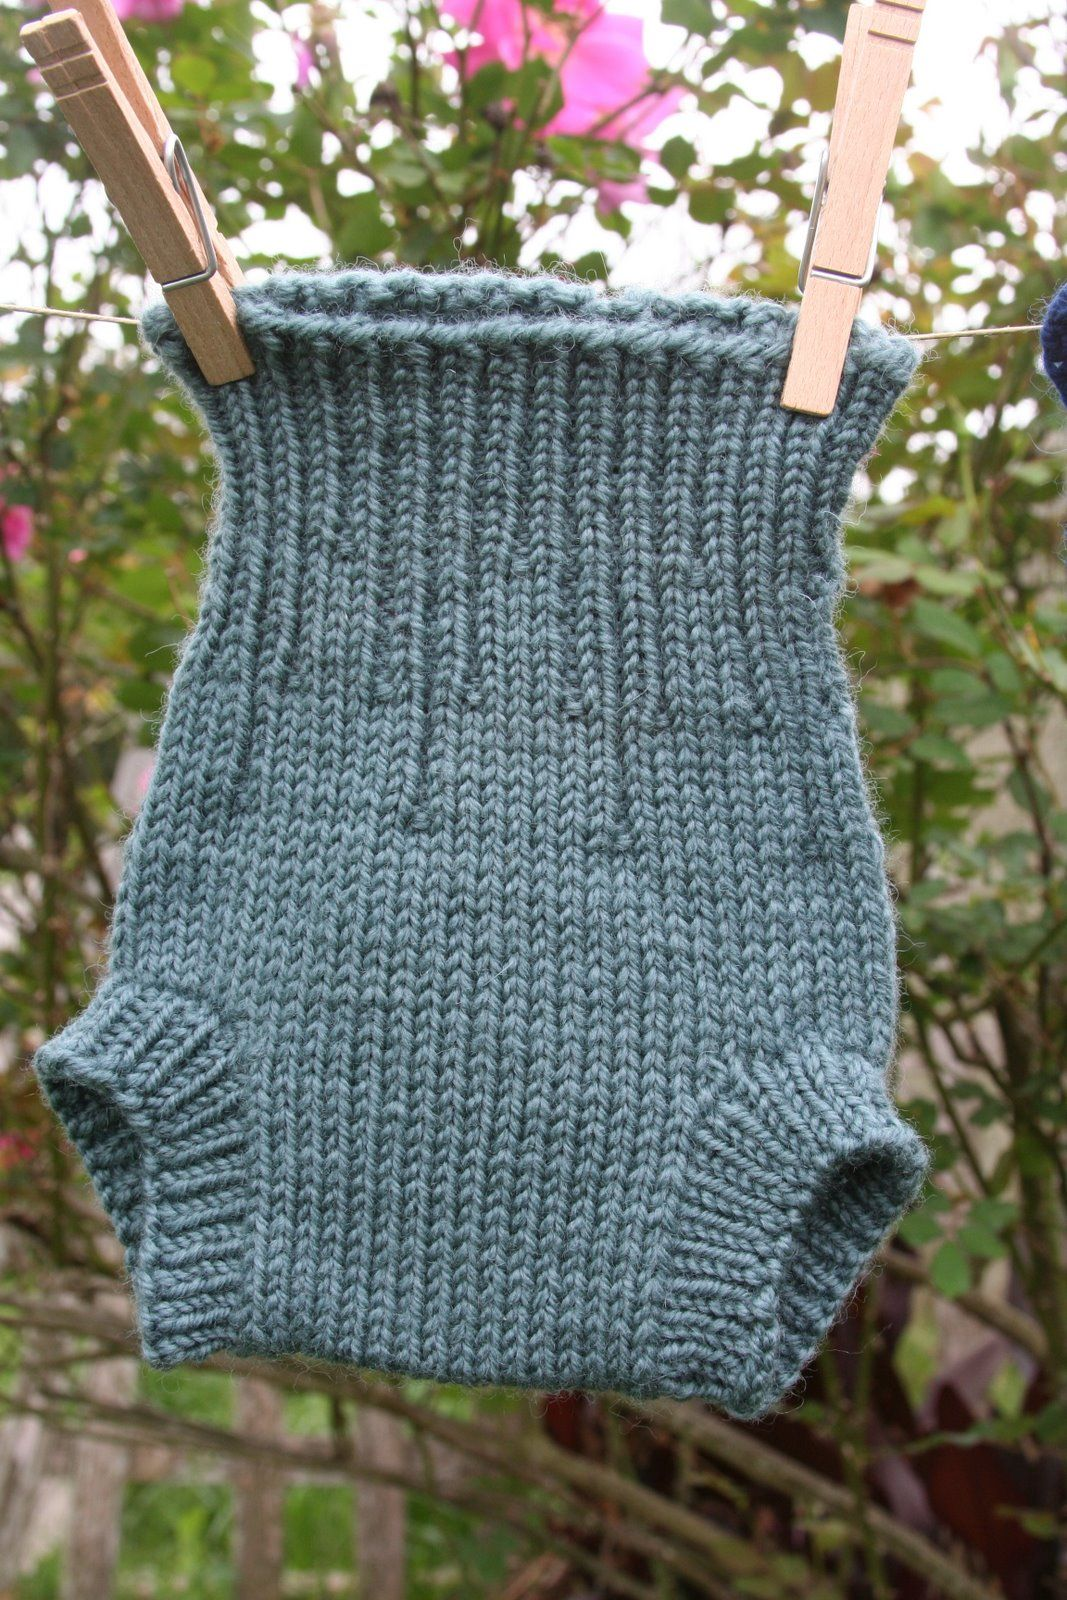 Knitted Wool Soakers | Baby knitting, Knitting, Baby ...